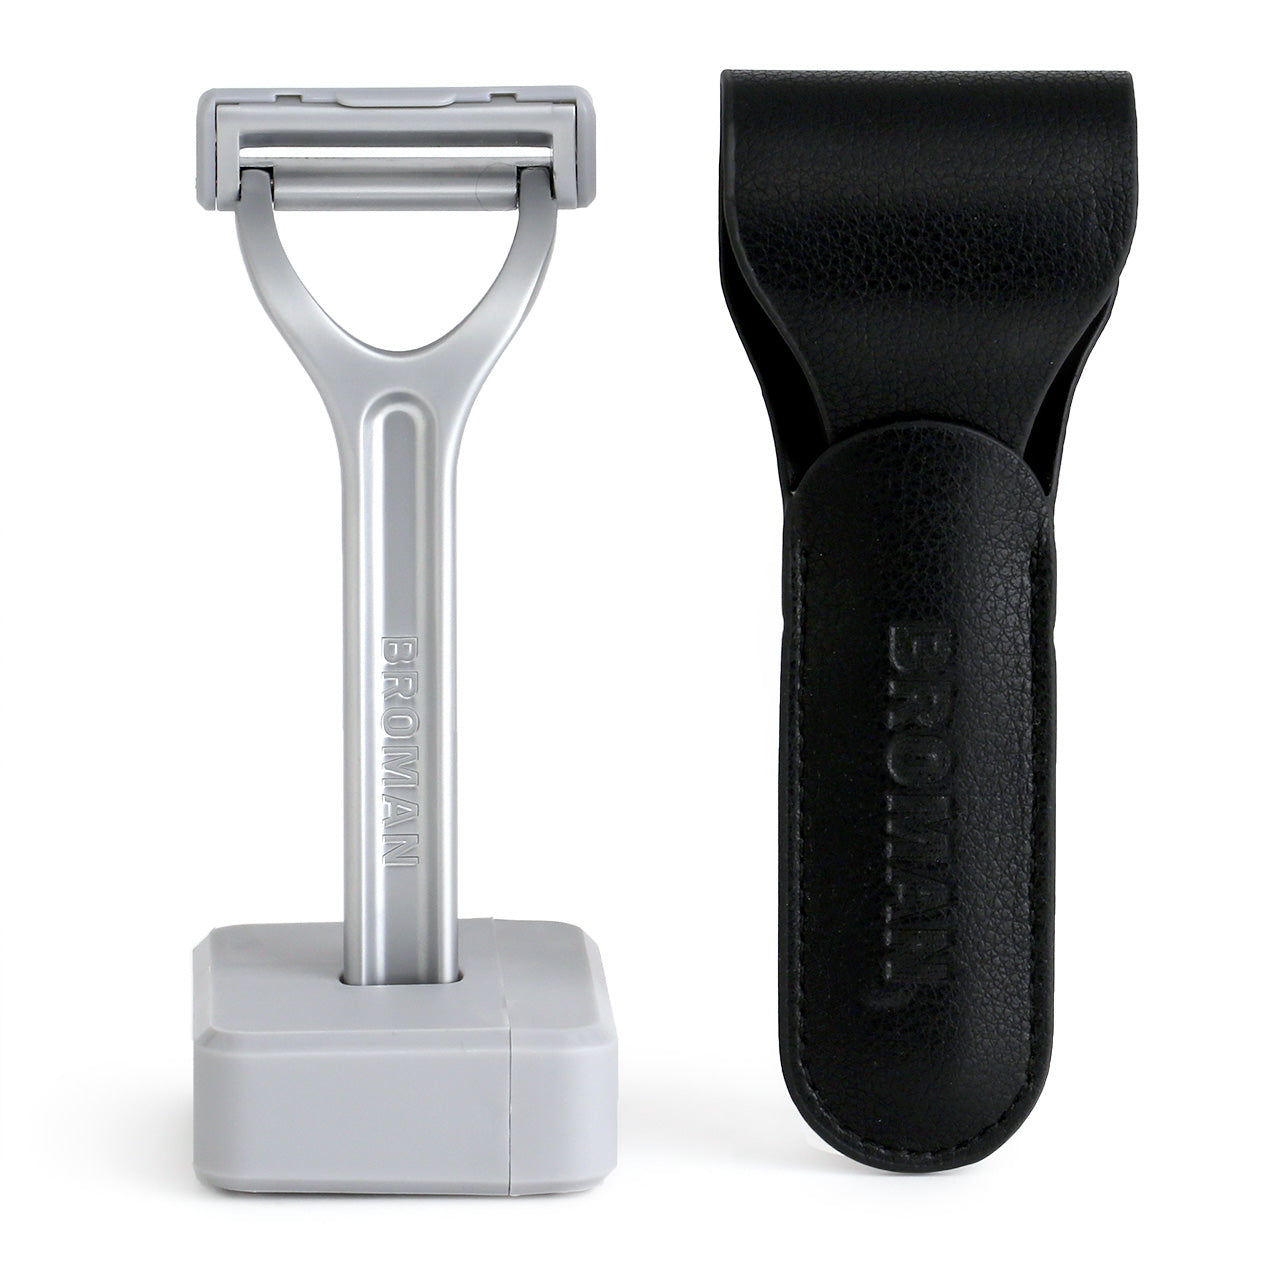 Broman Razor, stand and packaging